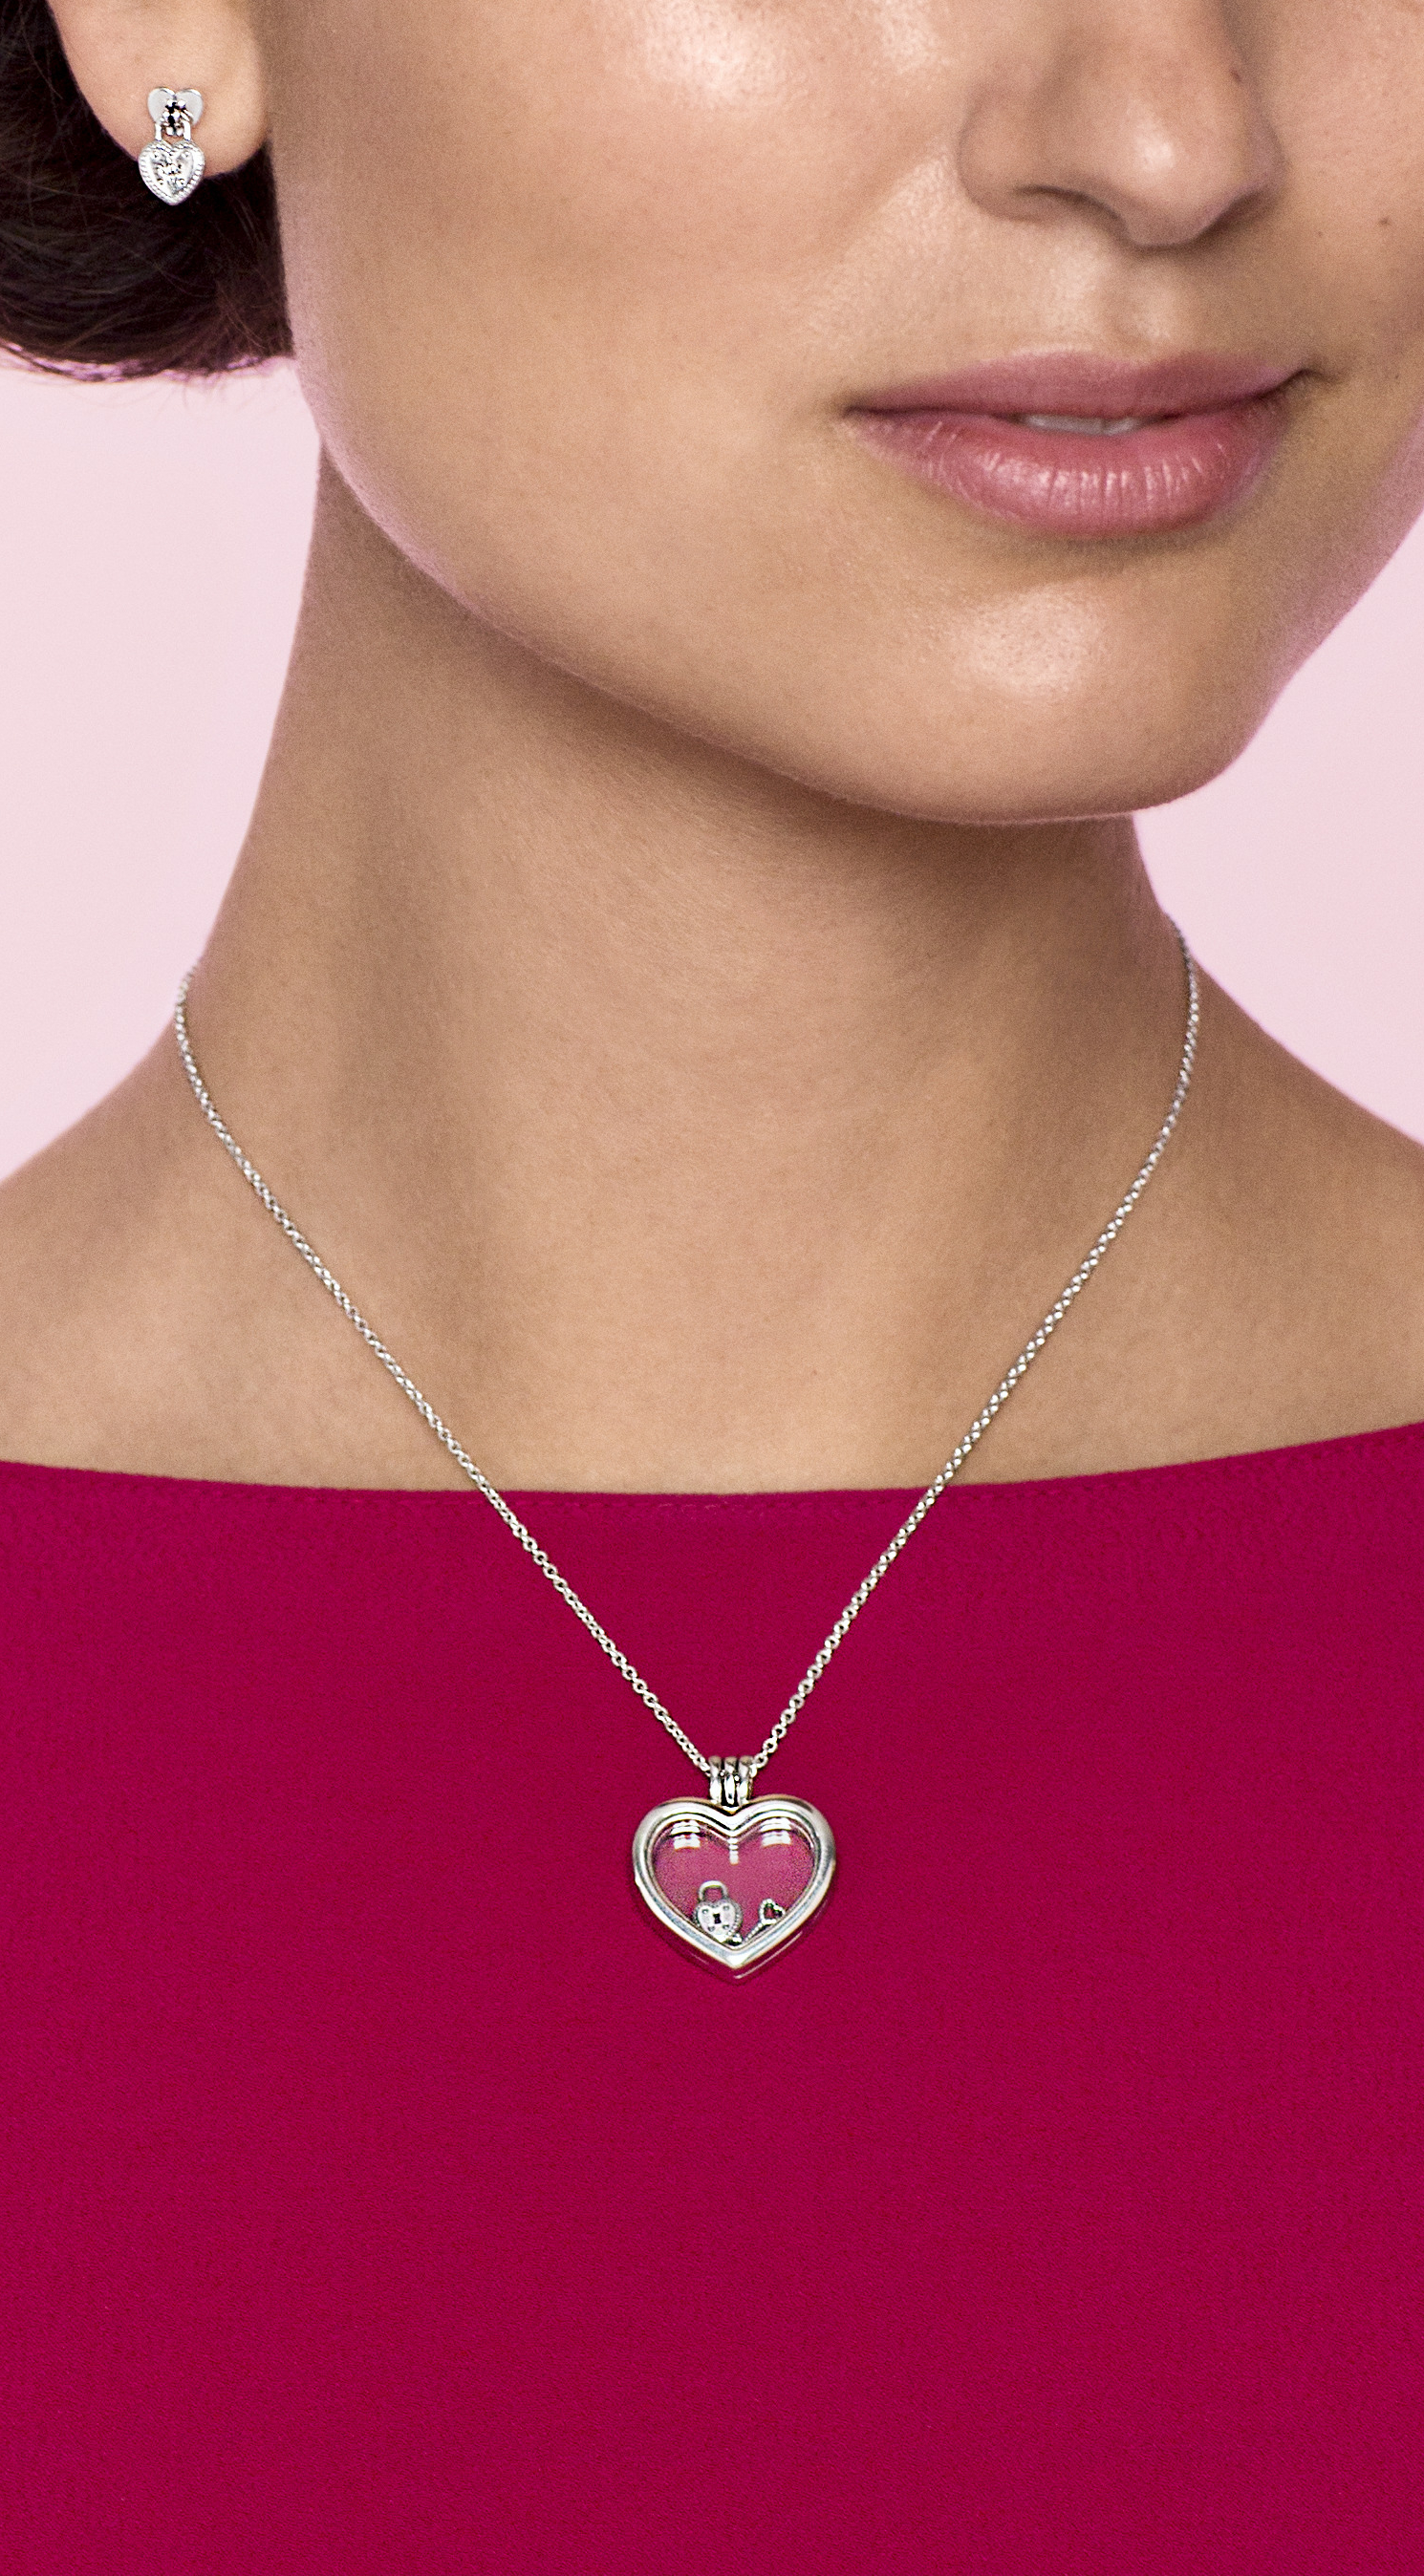 Valentine's Day Jewellery | Pandora Valentine's Day In 2019 Throughout 2019 Pandora Lockets Logo Dangle Charm Necklaces (View 24 of 25)